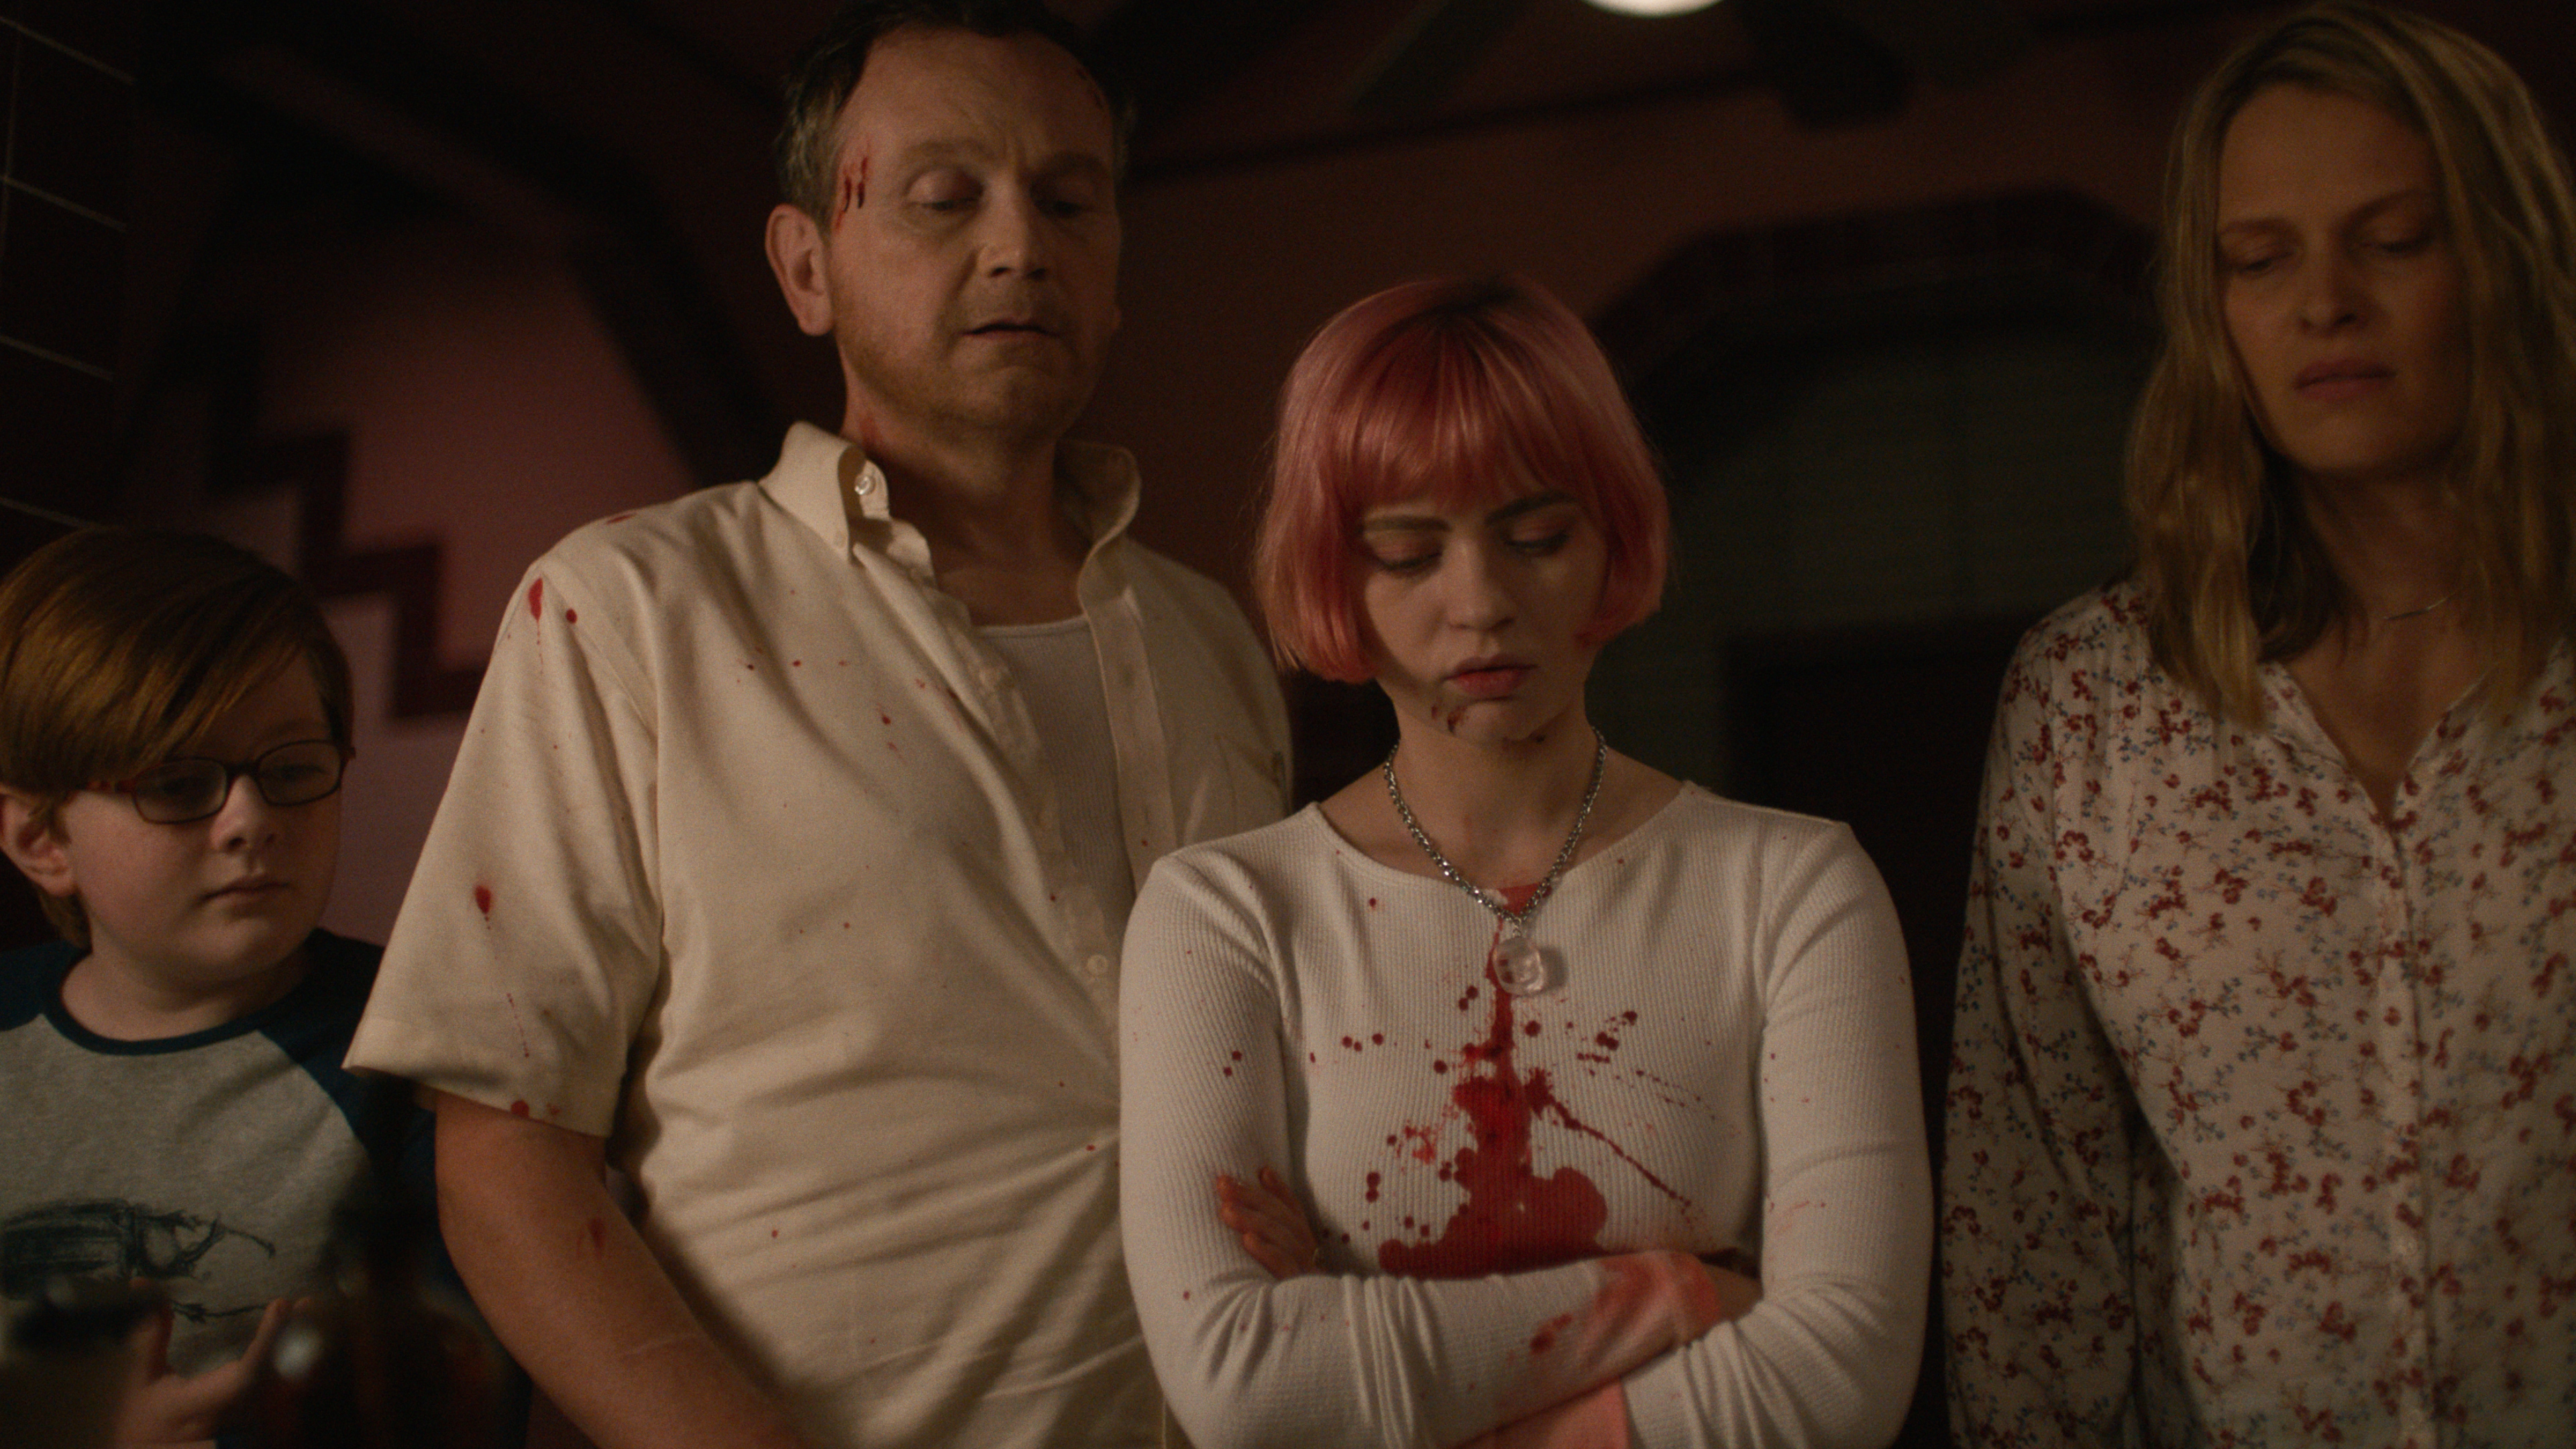 John James Cronin, Pat Healy, Sierra McCormick, and Vinessa Shaw stand next to each other covered in blood and looking down at something disgusting in the movie We Need to Do Something.